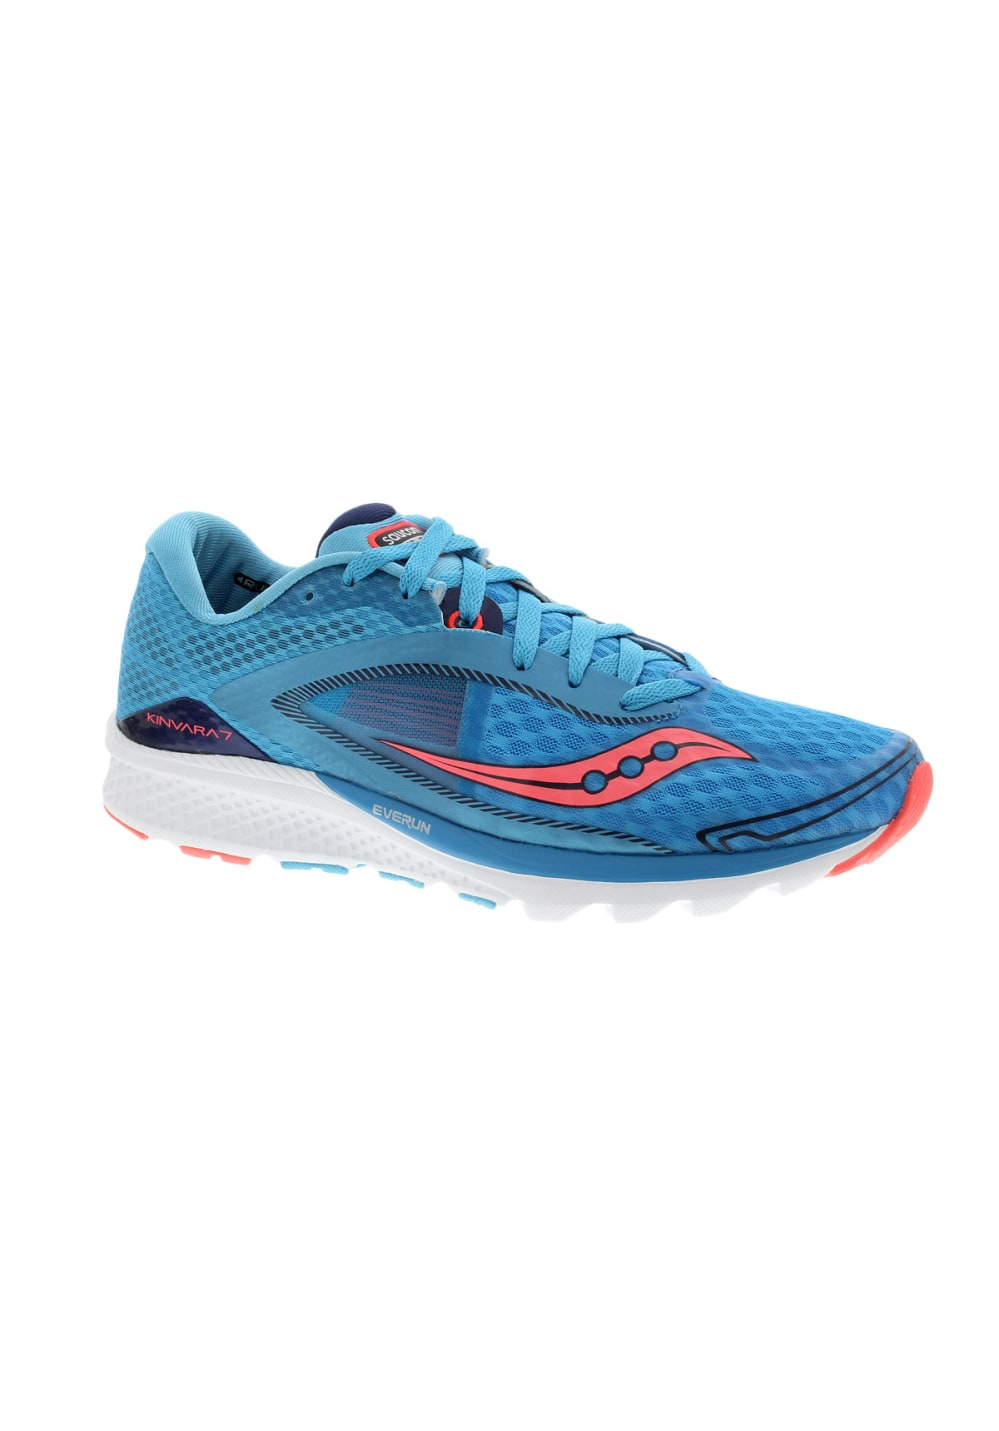 0a3509d2fa Saucony Kinvara 7 - Running shoes for Women - Blue